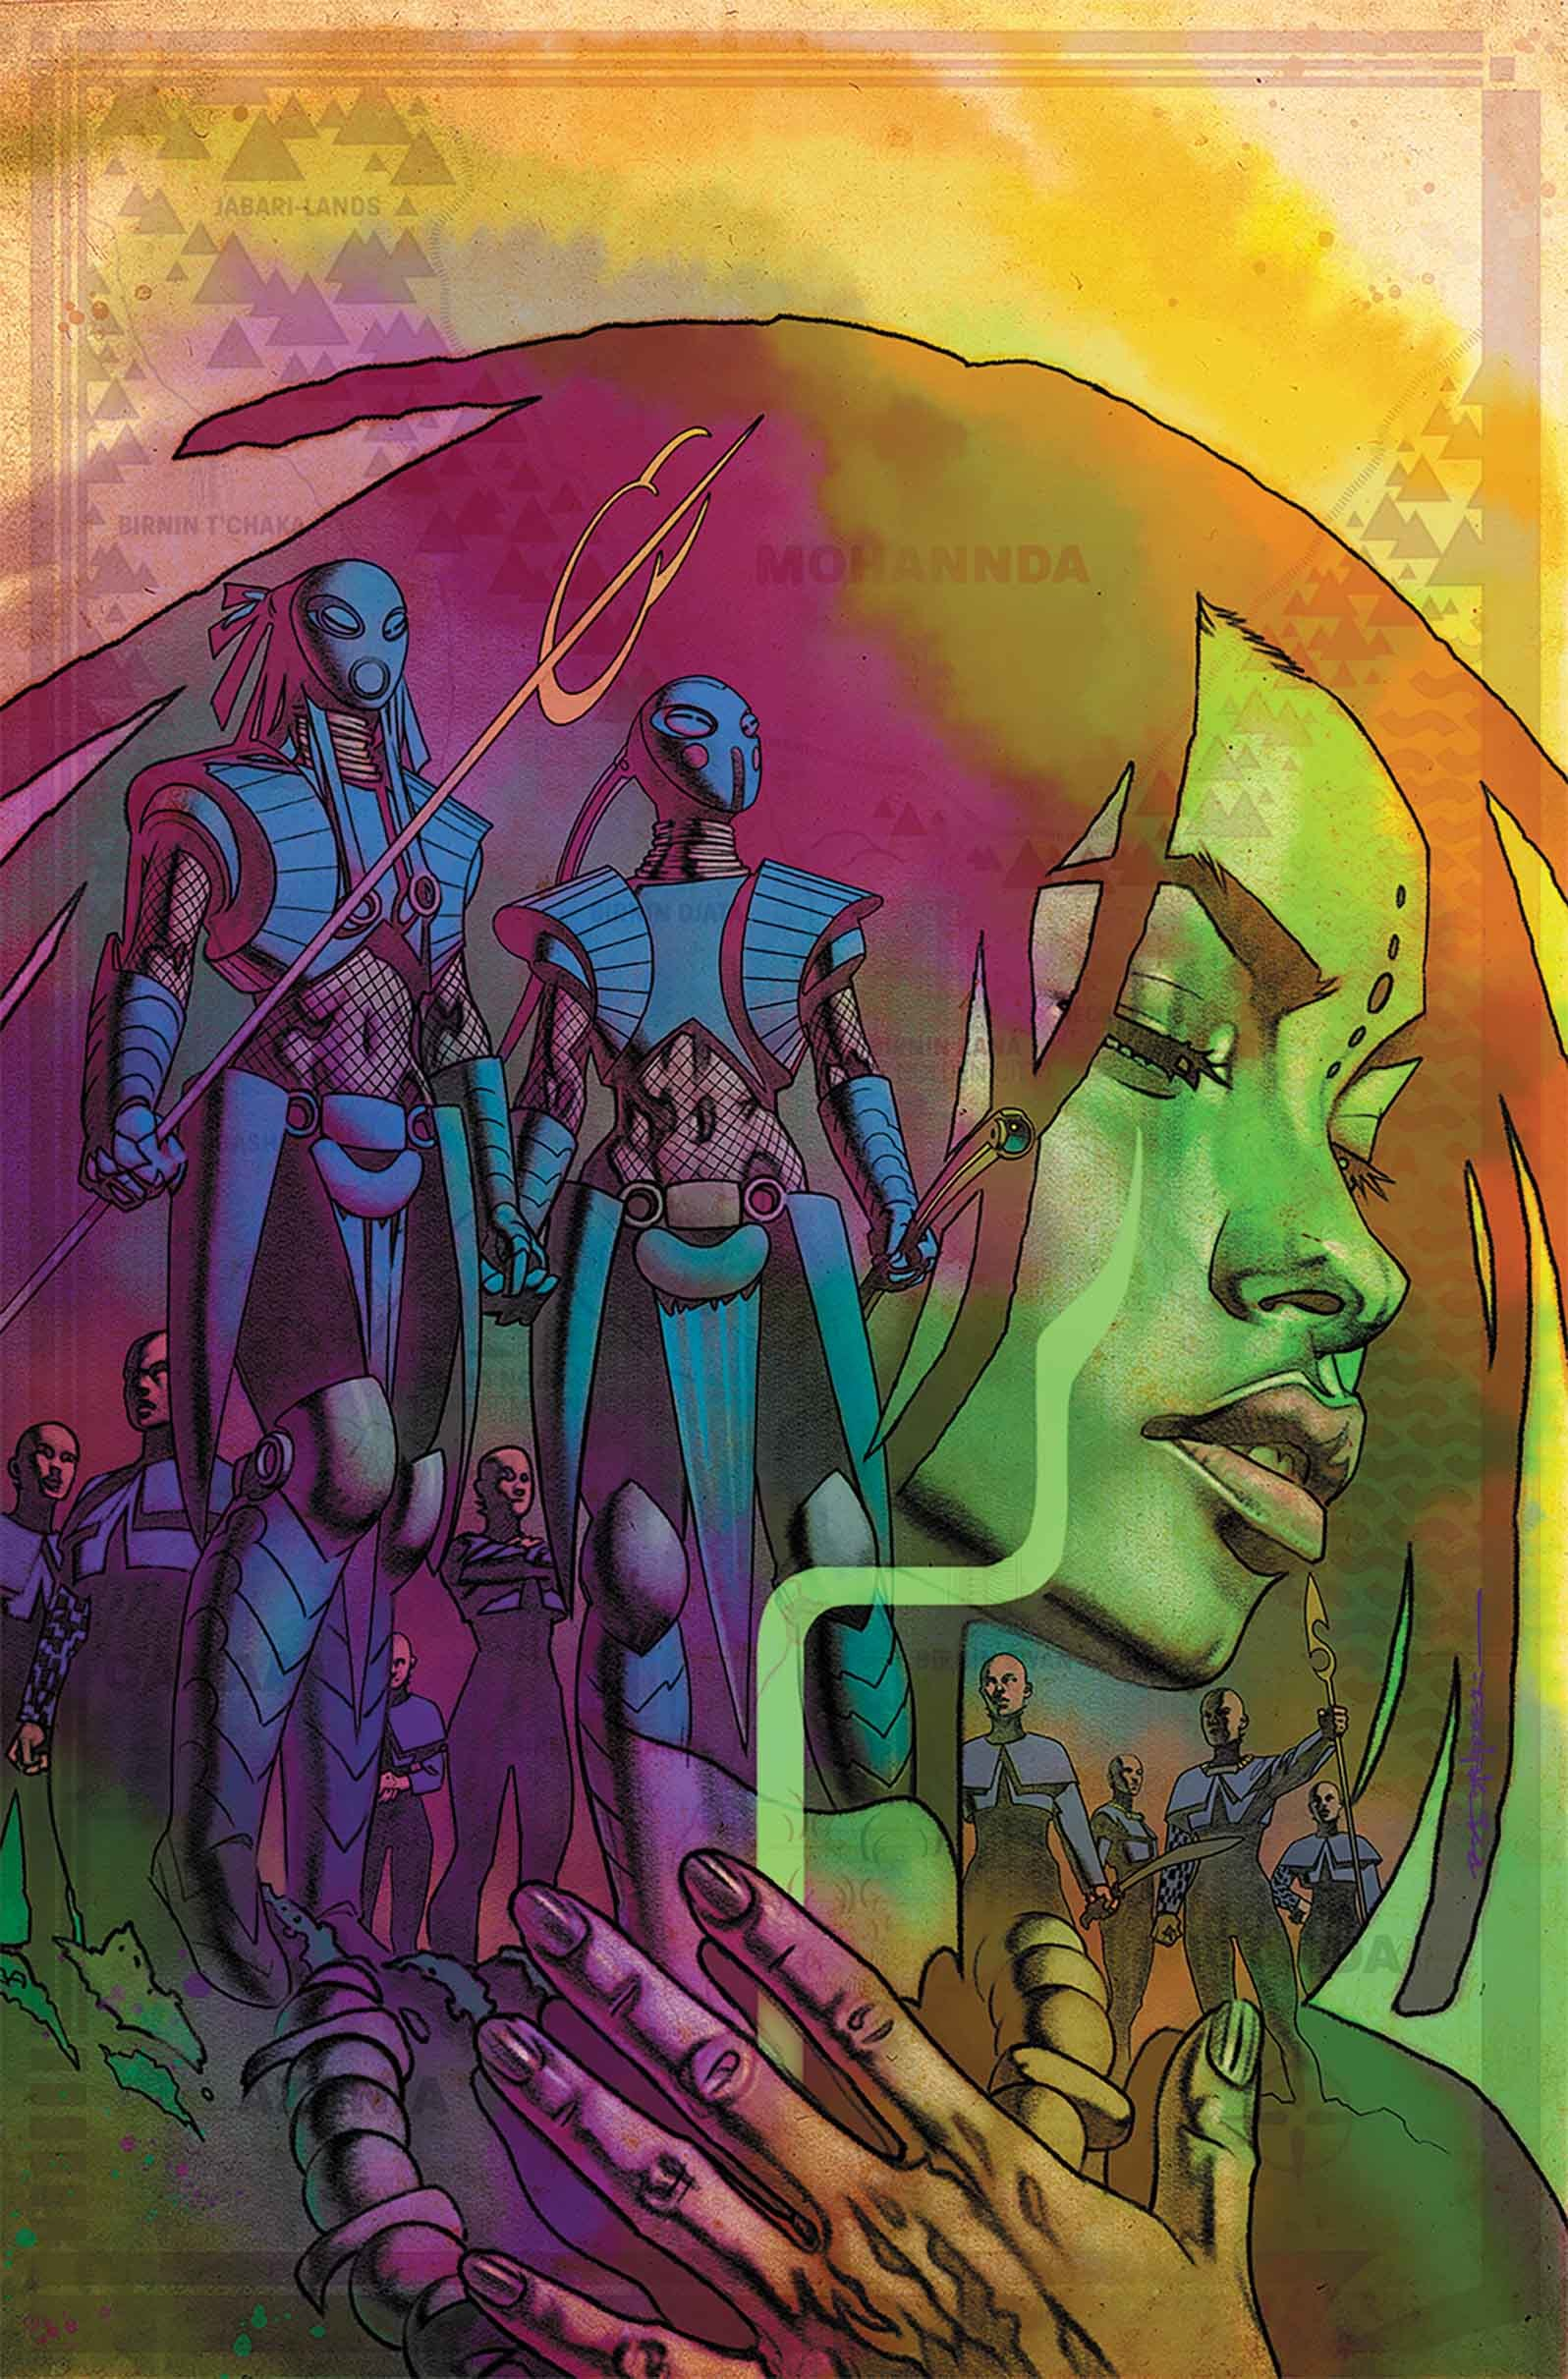 Stelfreeze variant cover